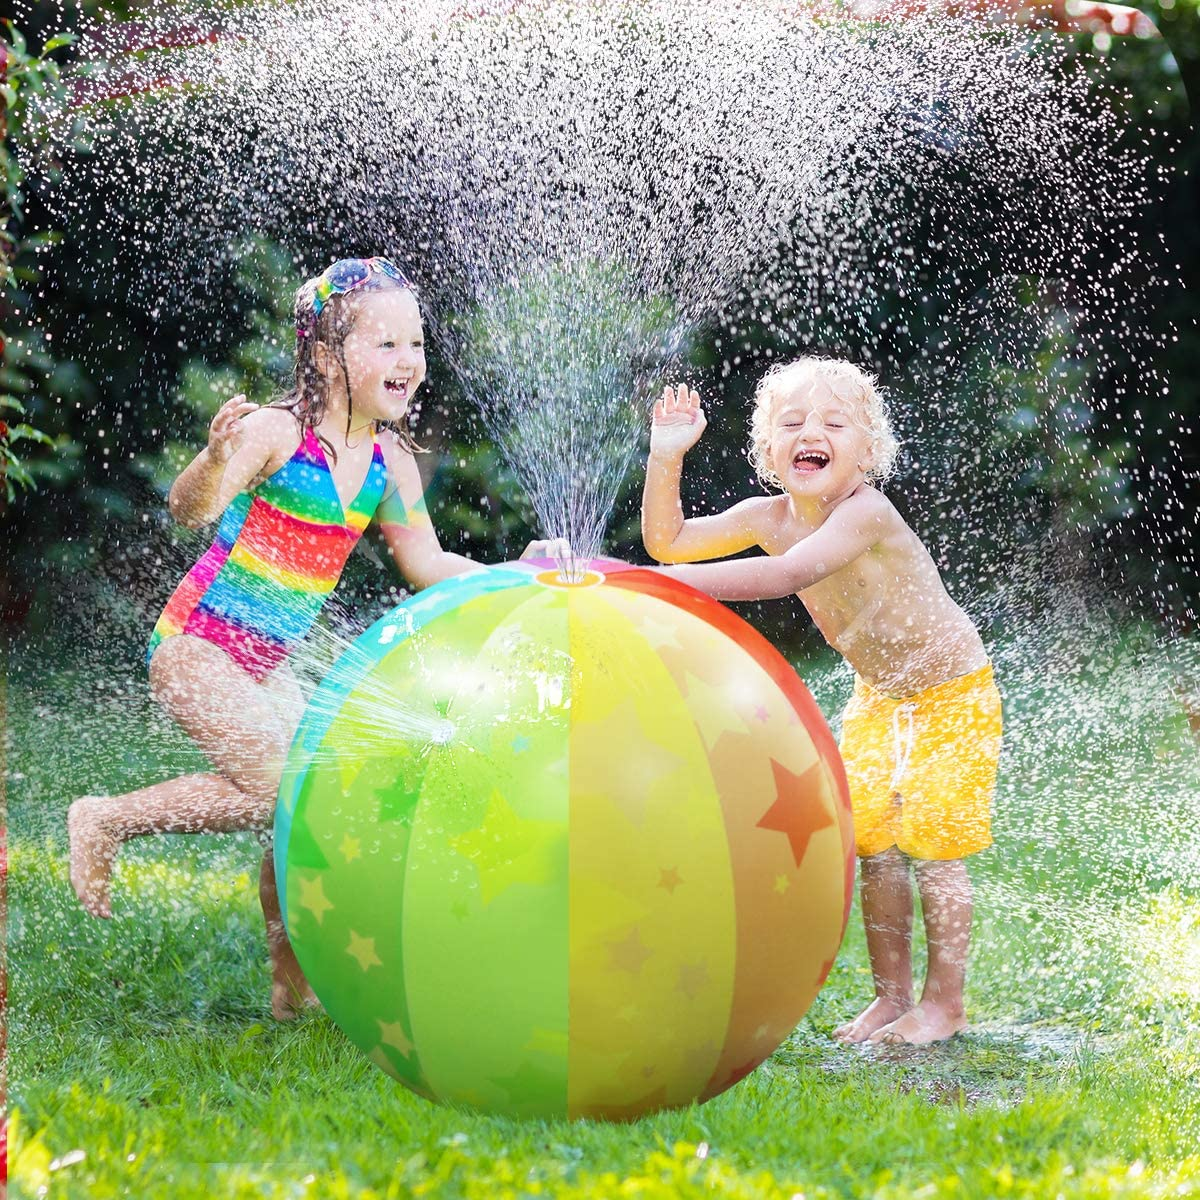 iBaseToy Rainbow Inflatable Sprinkler Ball- Spray Water Ball Toy ...